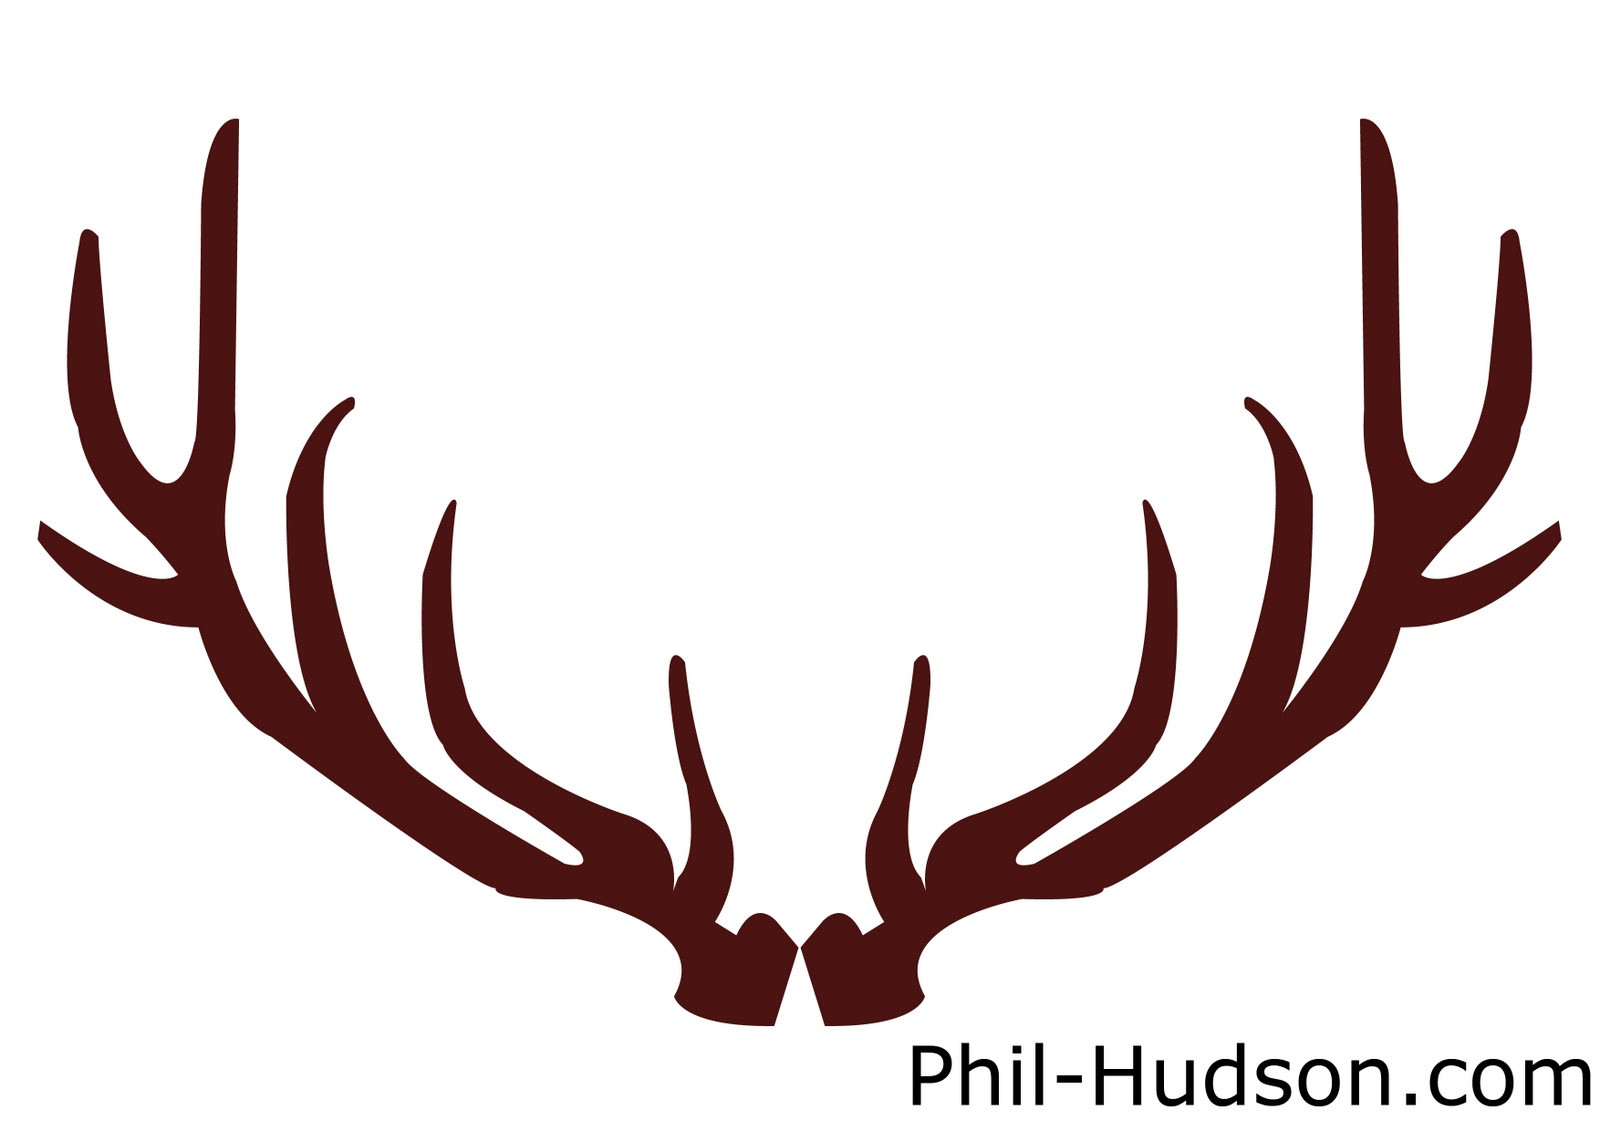 reindeer antlers silhouette at getdrawings com free for personal rh getdrawings com reindeer antlers clipart black and white